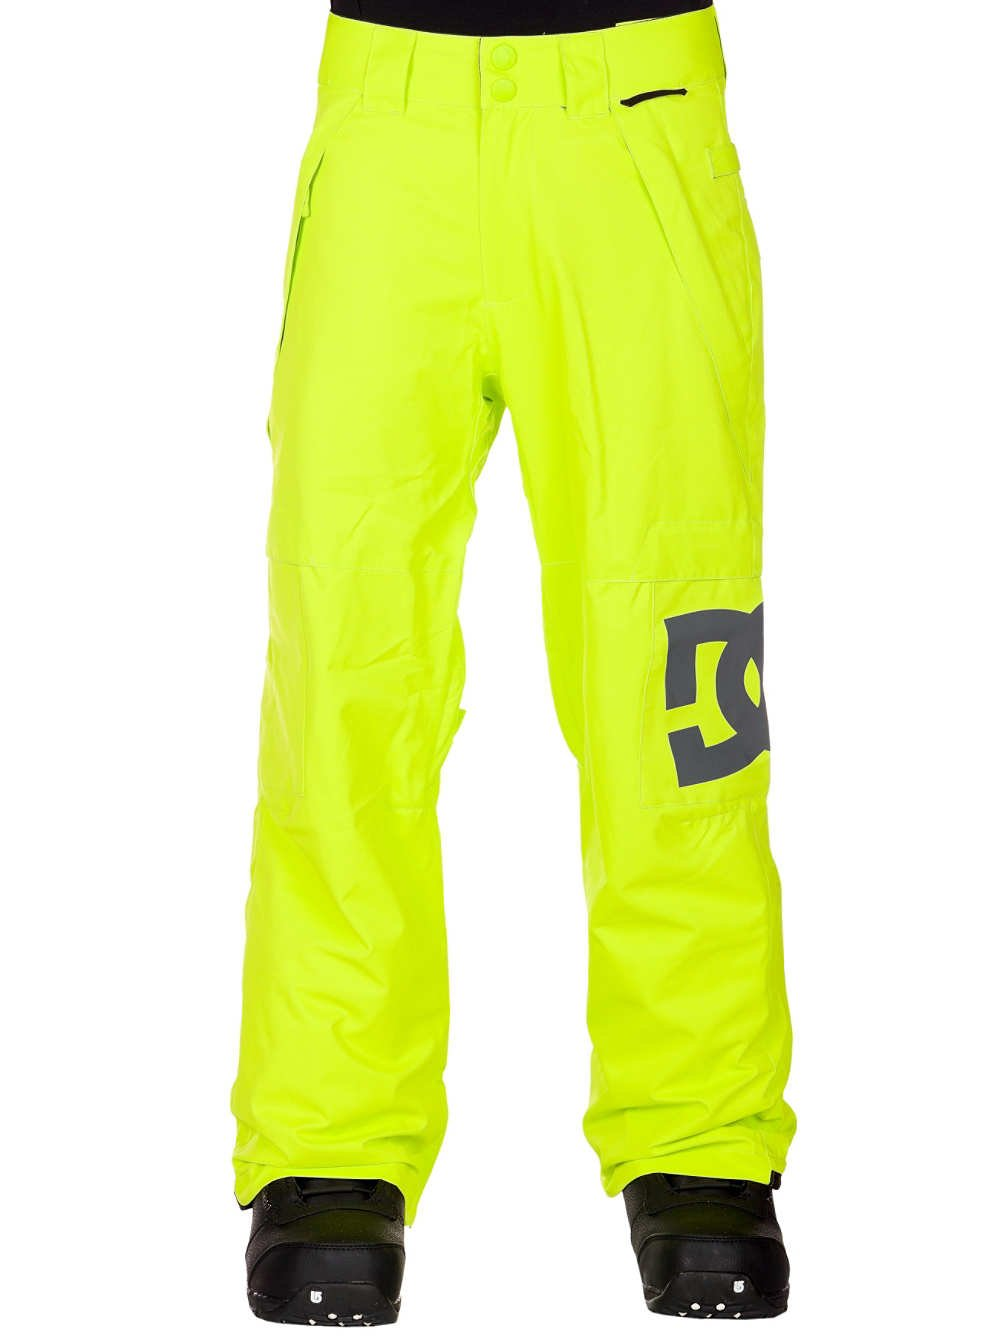 DC Banshee 13 Insulated Pant - Boys' Lime, M by DC